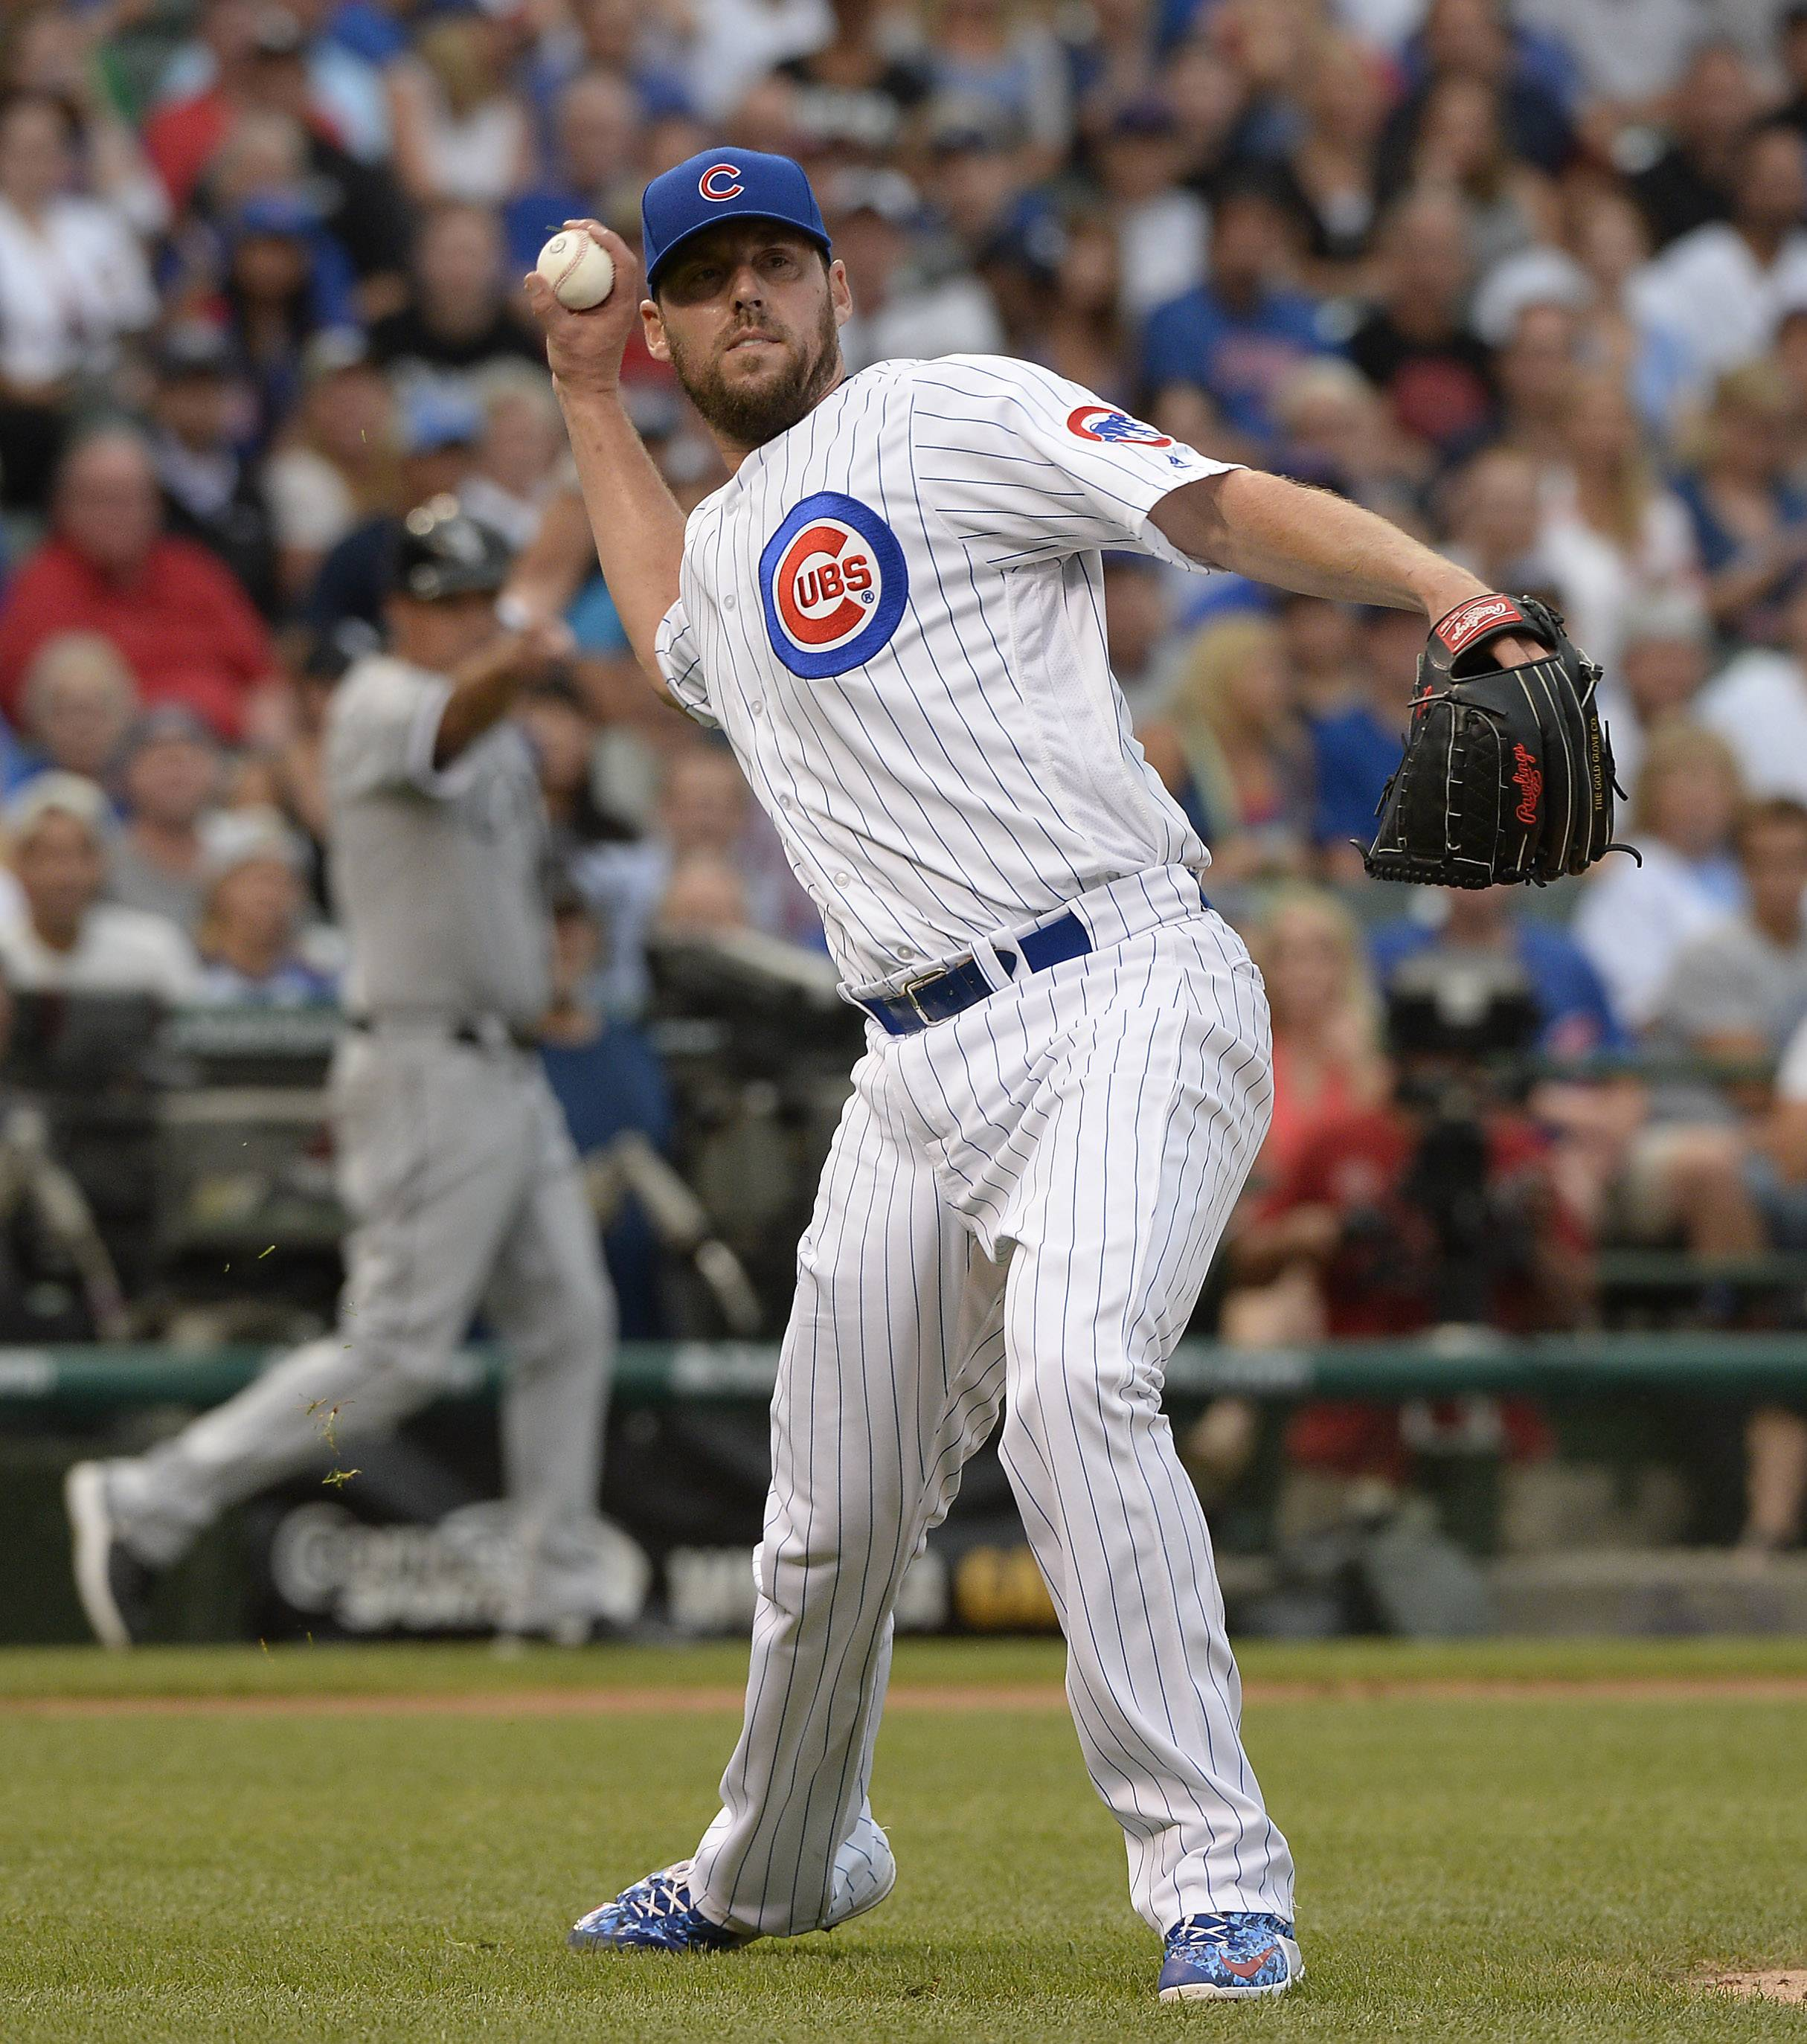 Mark Welsh/mwelsh@dailyherald.comChicago Cubs pitcher John Lackey throws to first in the first inning against the Chicago White Sox at Wrigley Field.